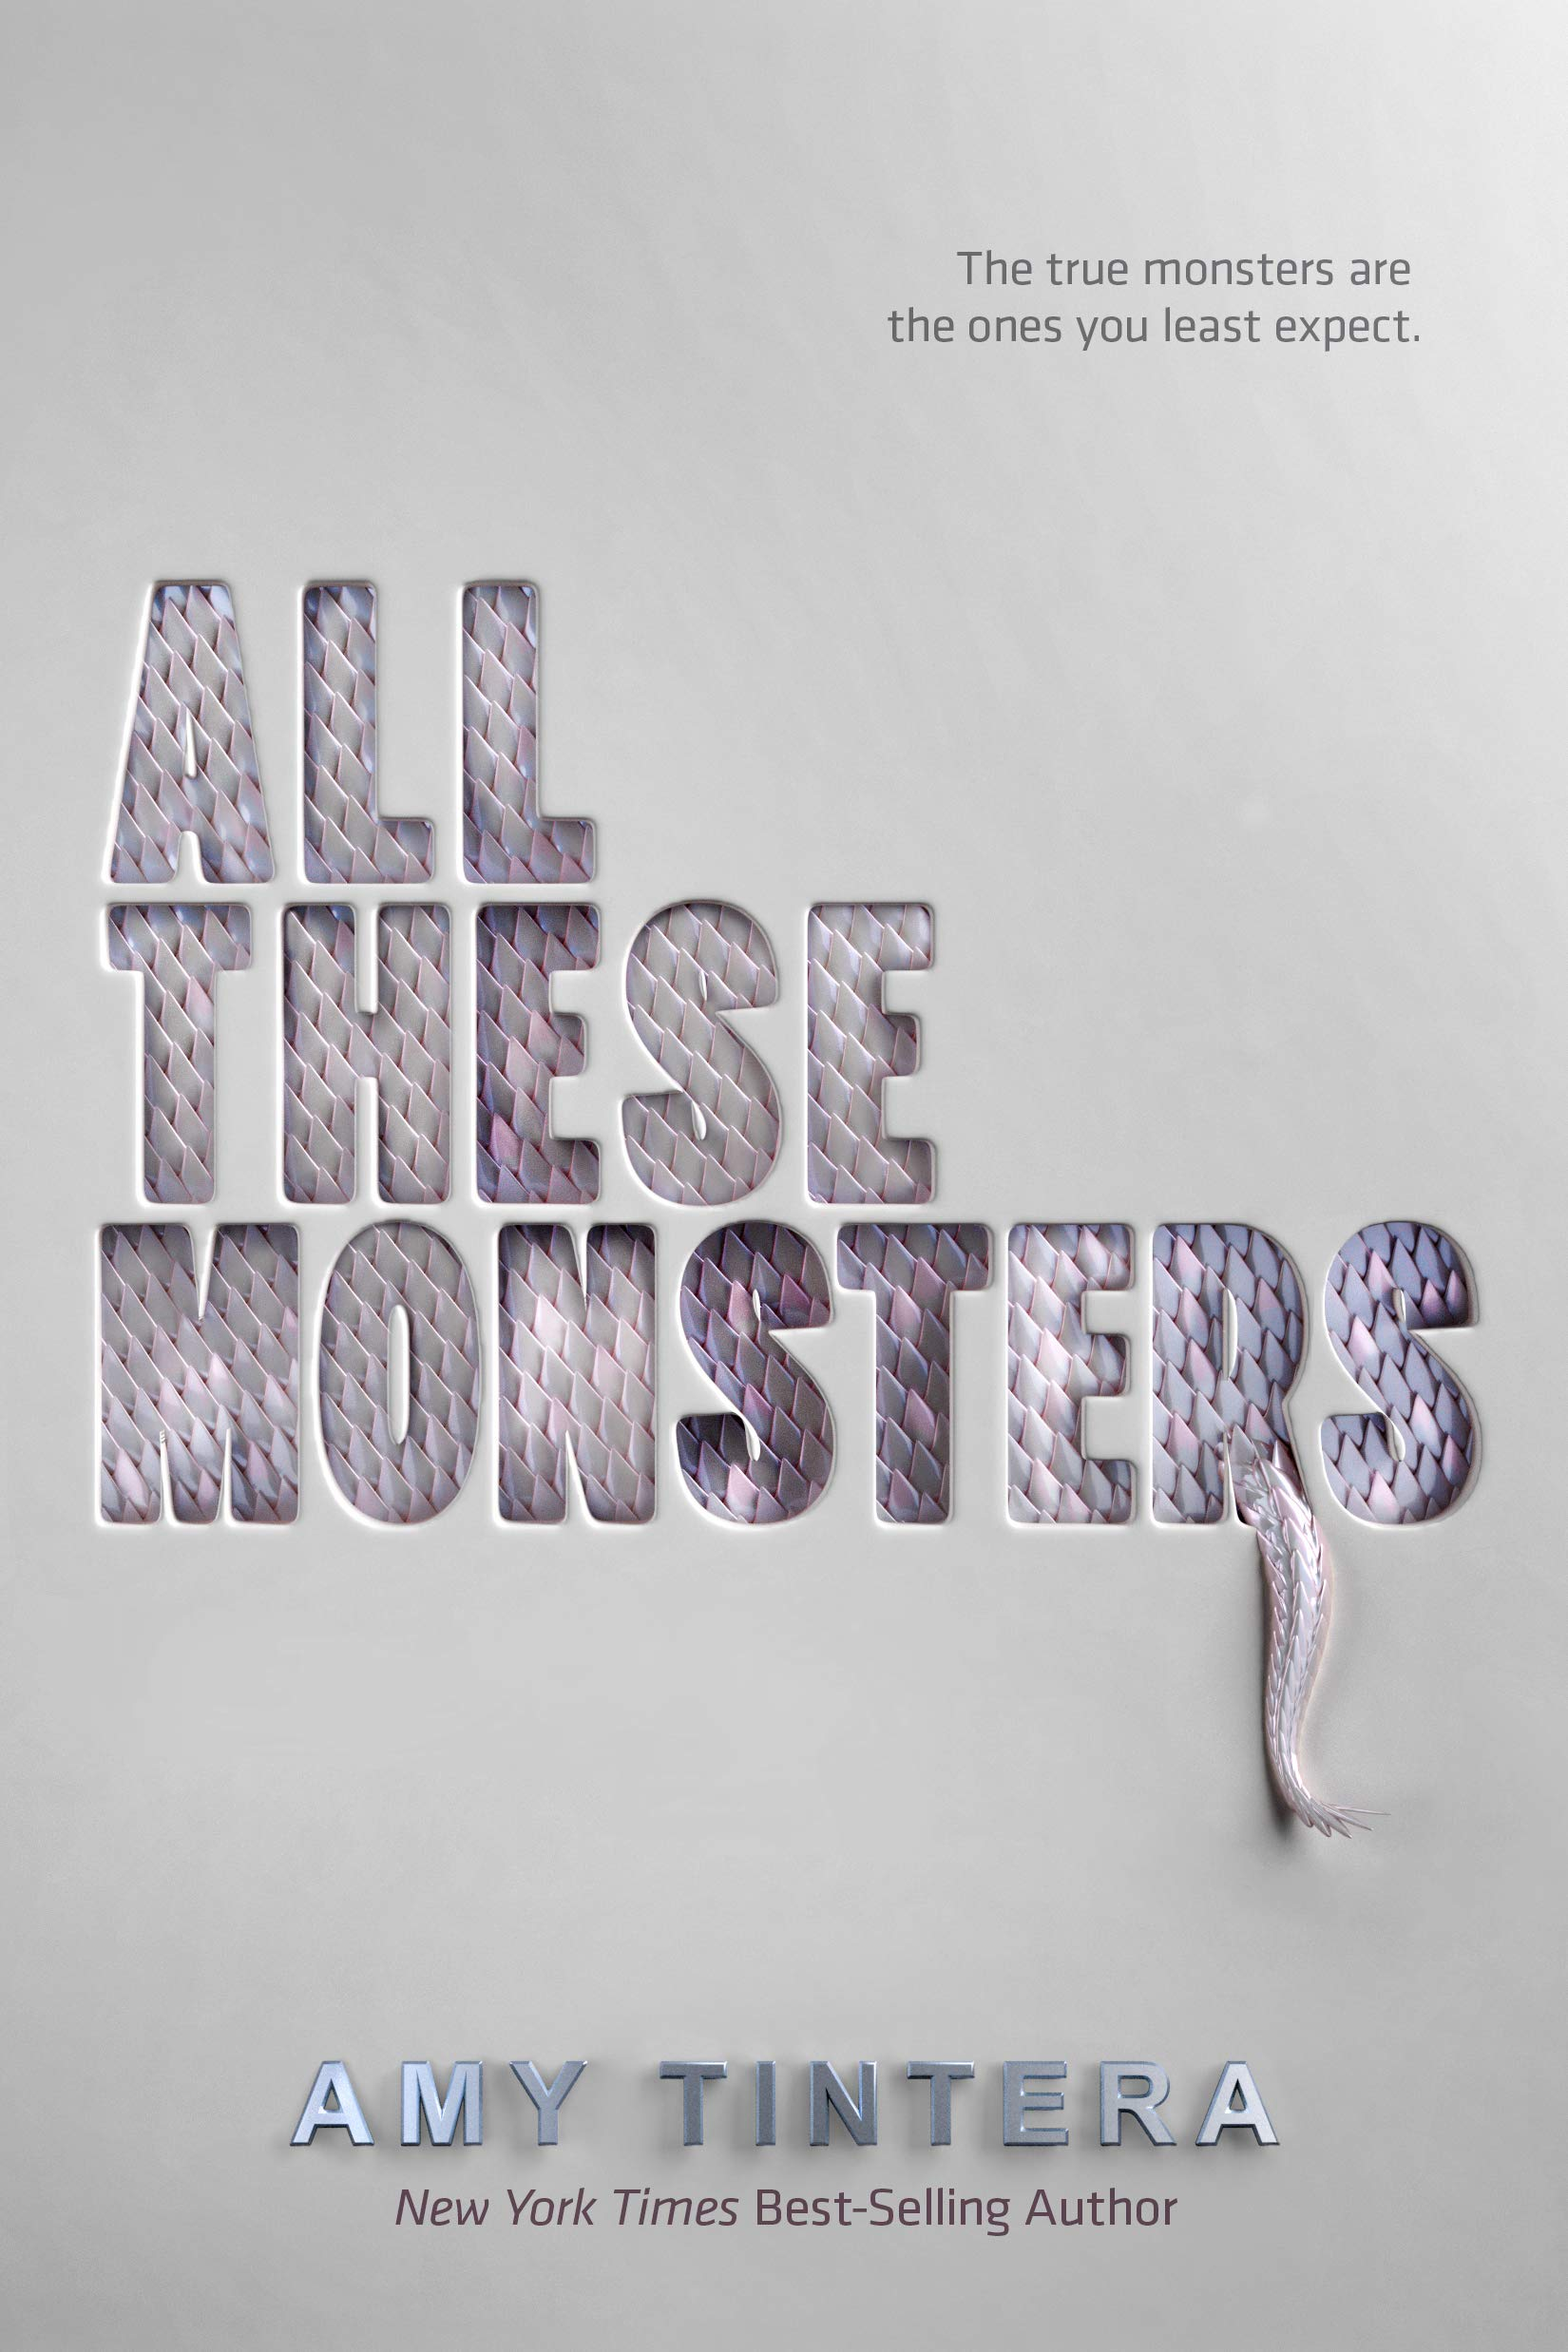 Amazon.com: All These Monsters (9780358012405): Tintera, Amy: Books